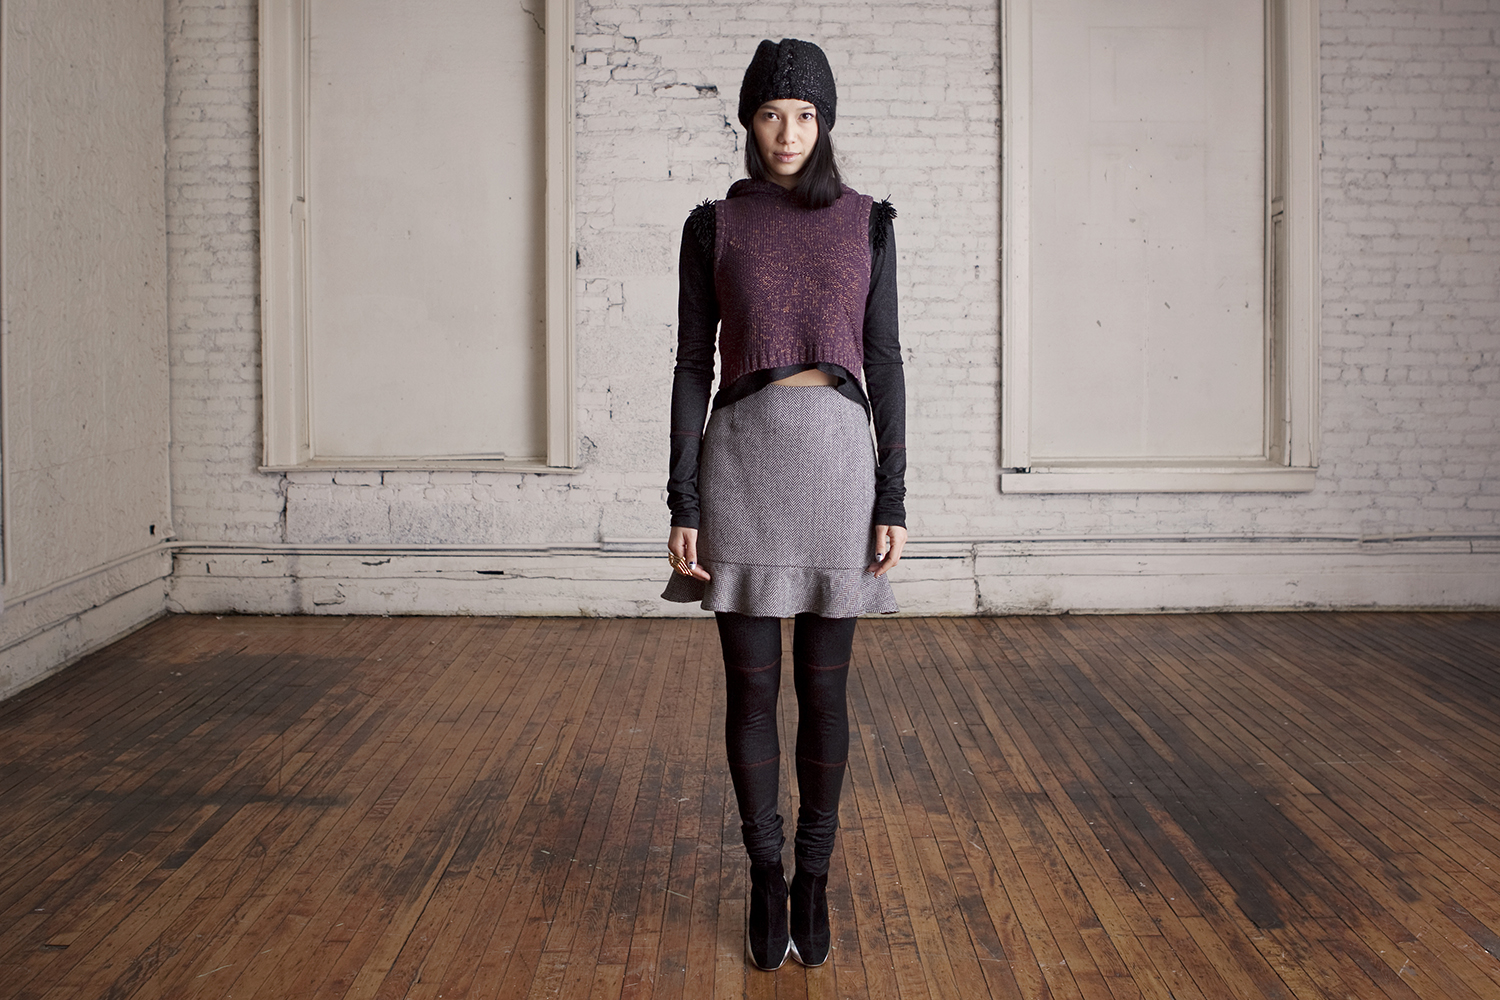 Fauxhawk Cable Cap, Aubergine Hooded Sweater, Beaded Wrap Top